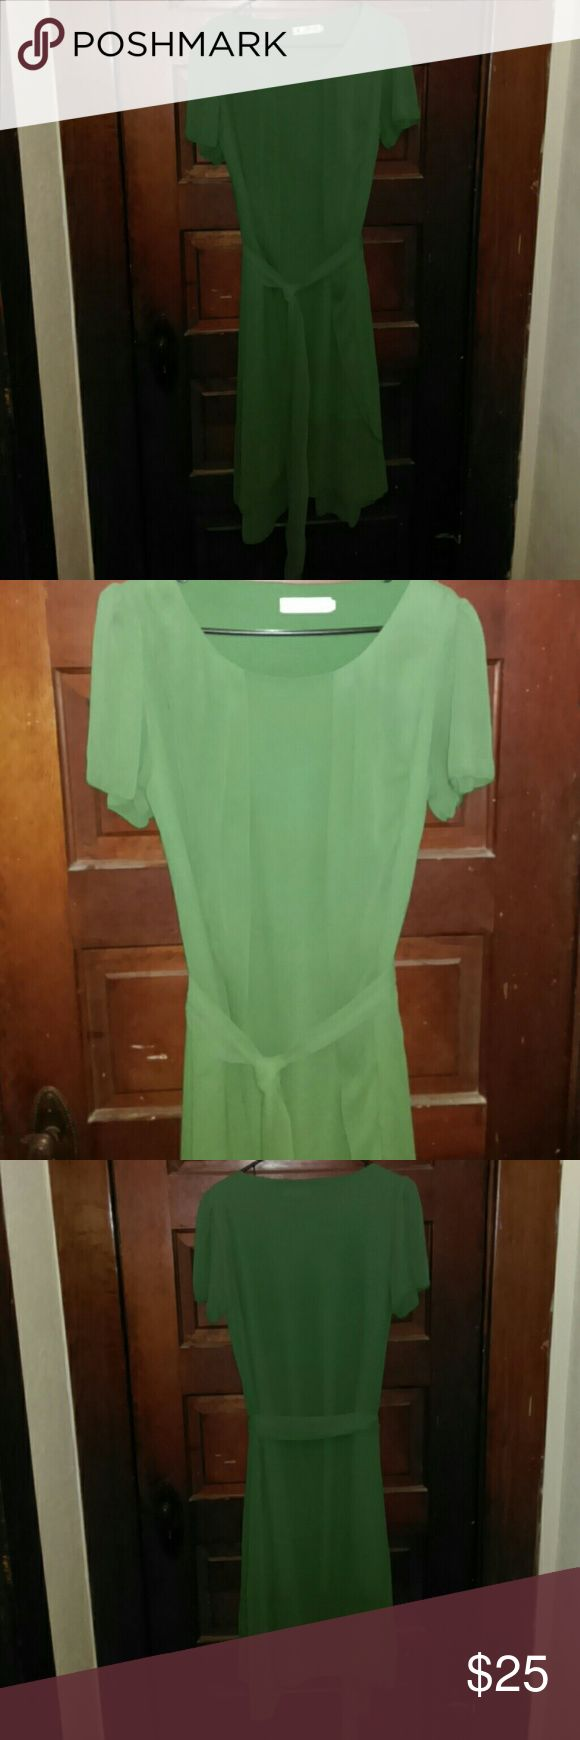 Kelly Green Dress NWOT Beautiful Kelly Green Dress. Can be worn casually, or semi-formally. CL Dresses